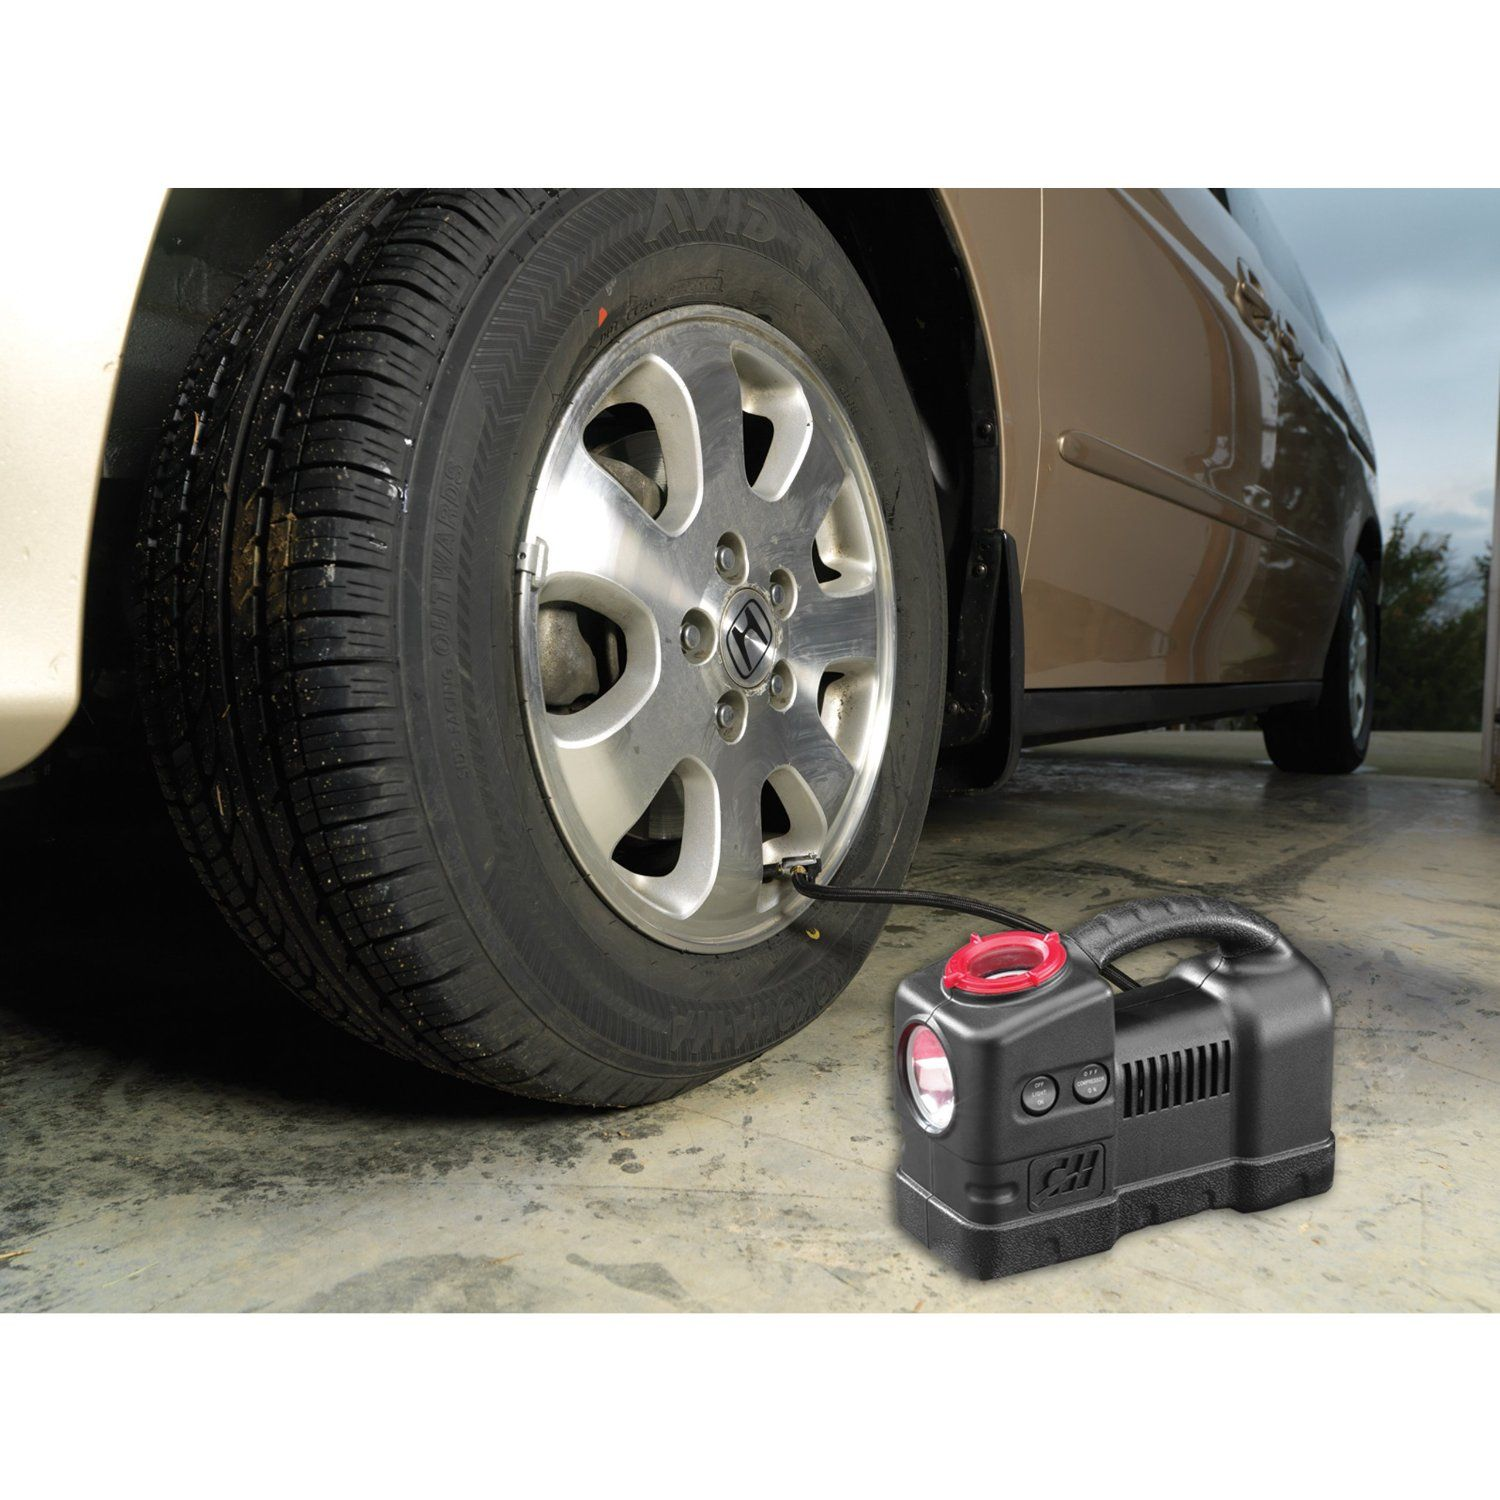 How To Find The Best 120V Air Compressors Compressor